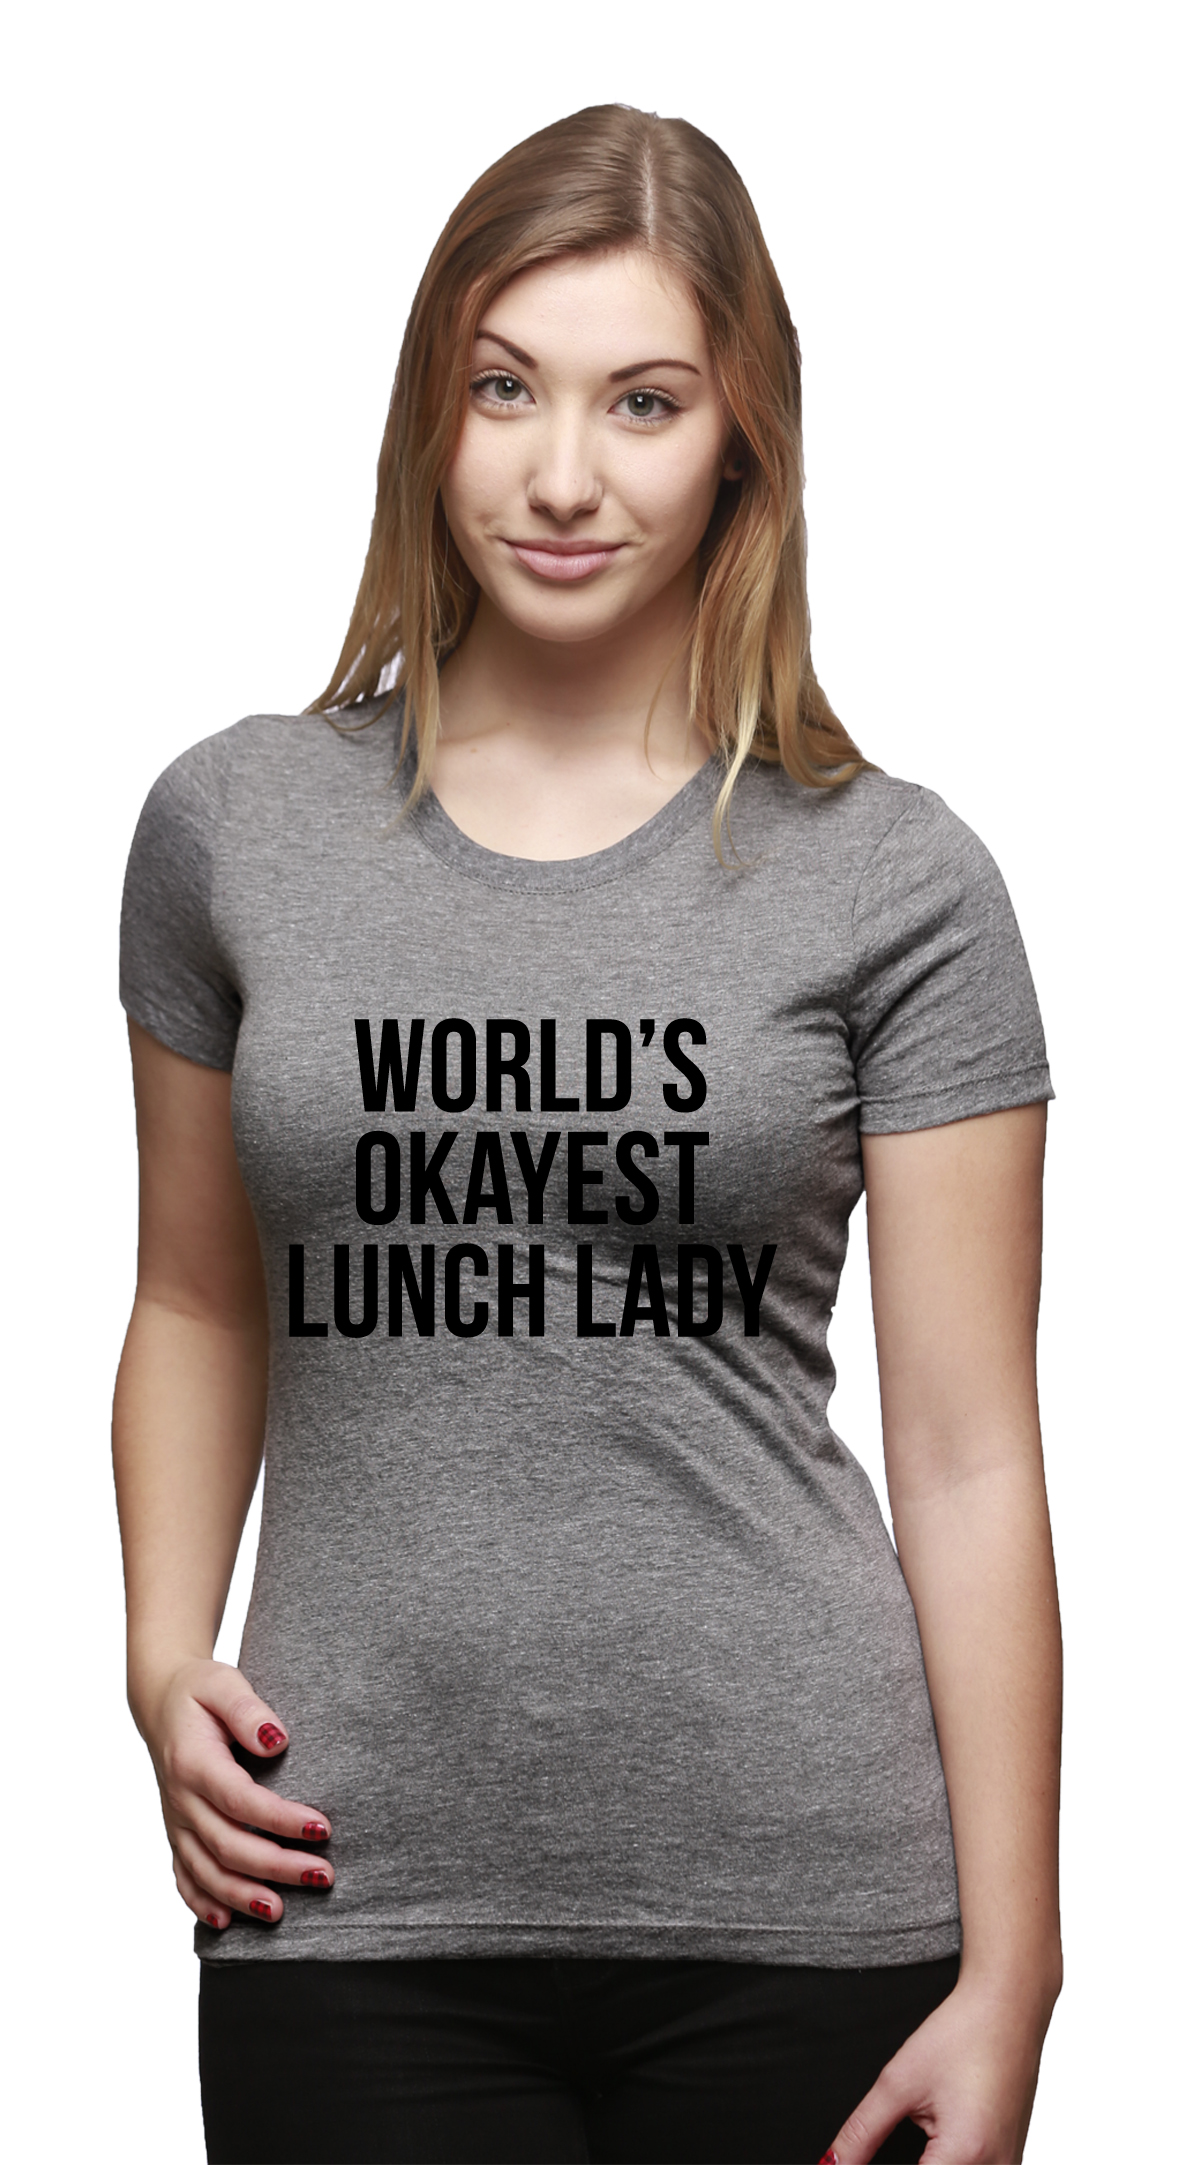 womens worlds okayest lunch lady funny school career t shirt for ladies grey ebay. Black Bedroom Furniture Sets. Home Design Ideas